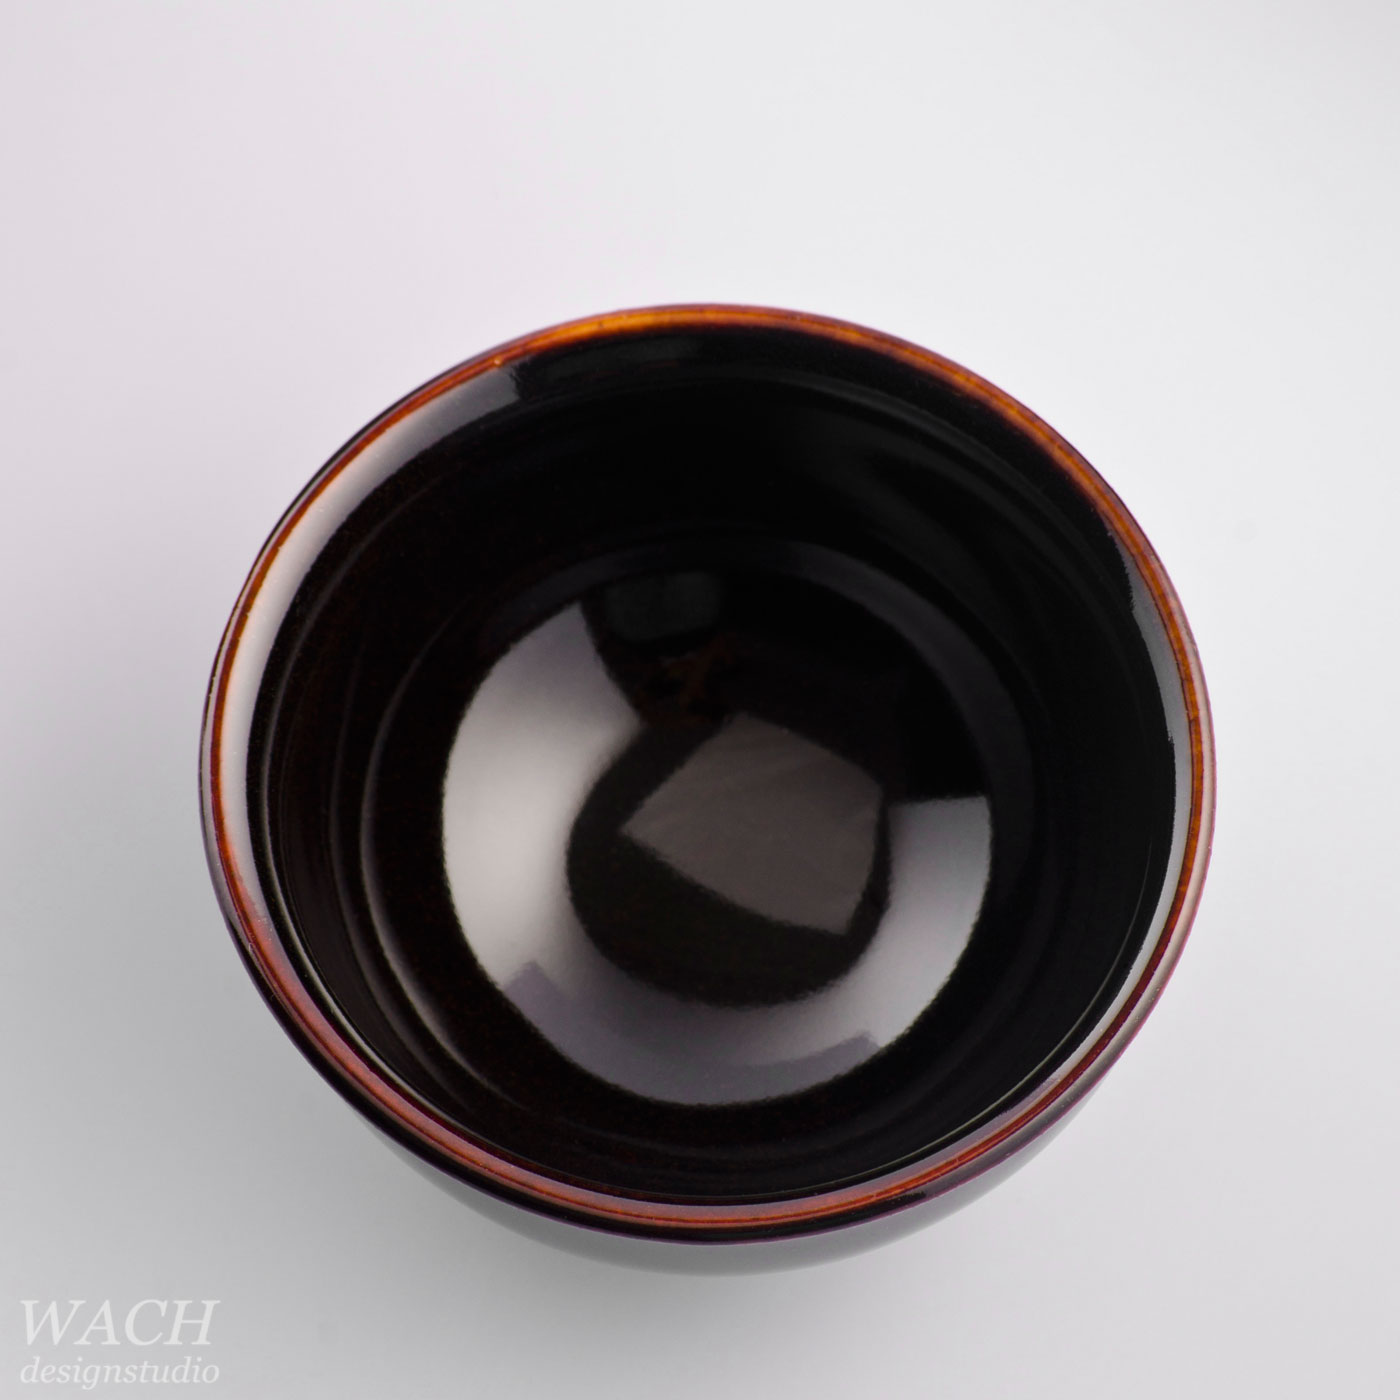 Vietnamese handcrafted ceramic tea cup